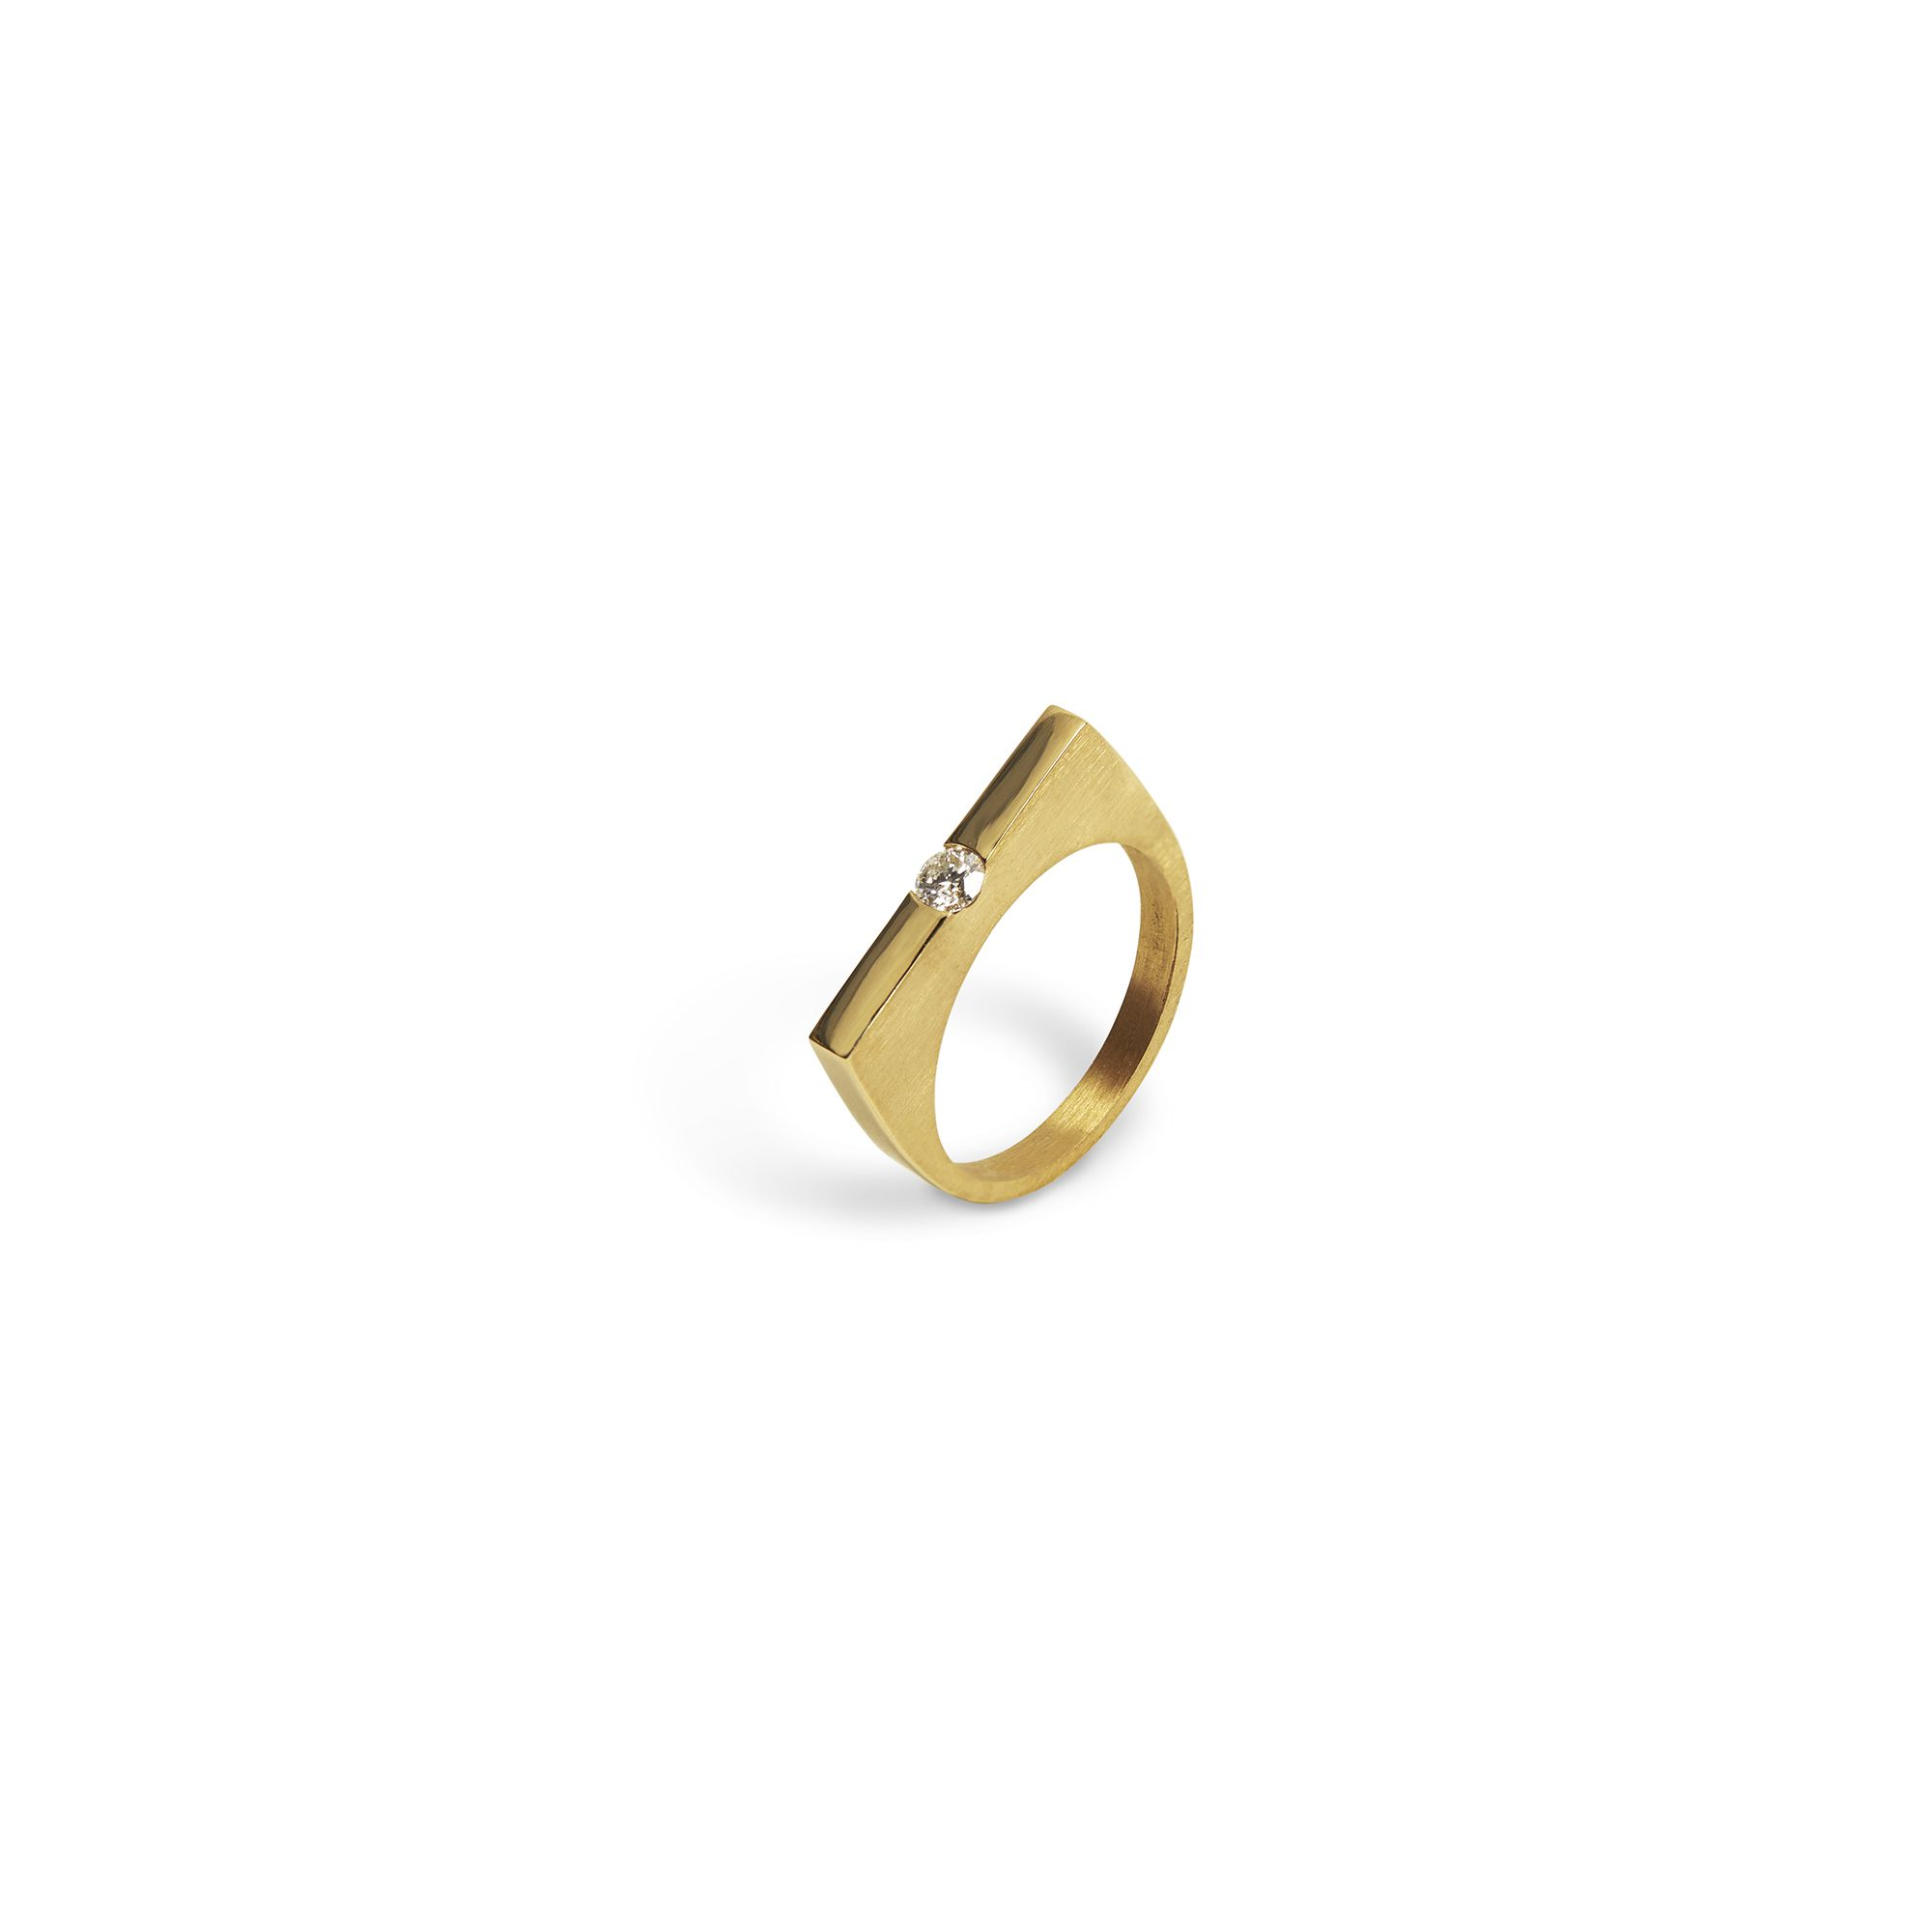 Modular 'Congiunzioni' Square ring Ring in yellow gold and diamonds